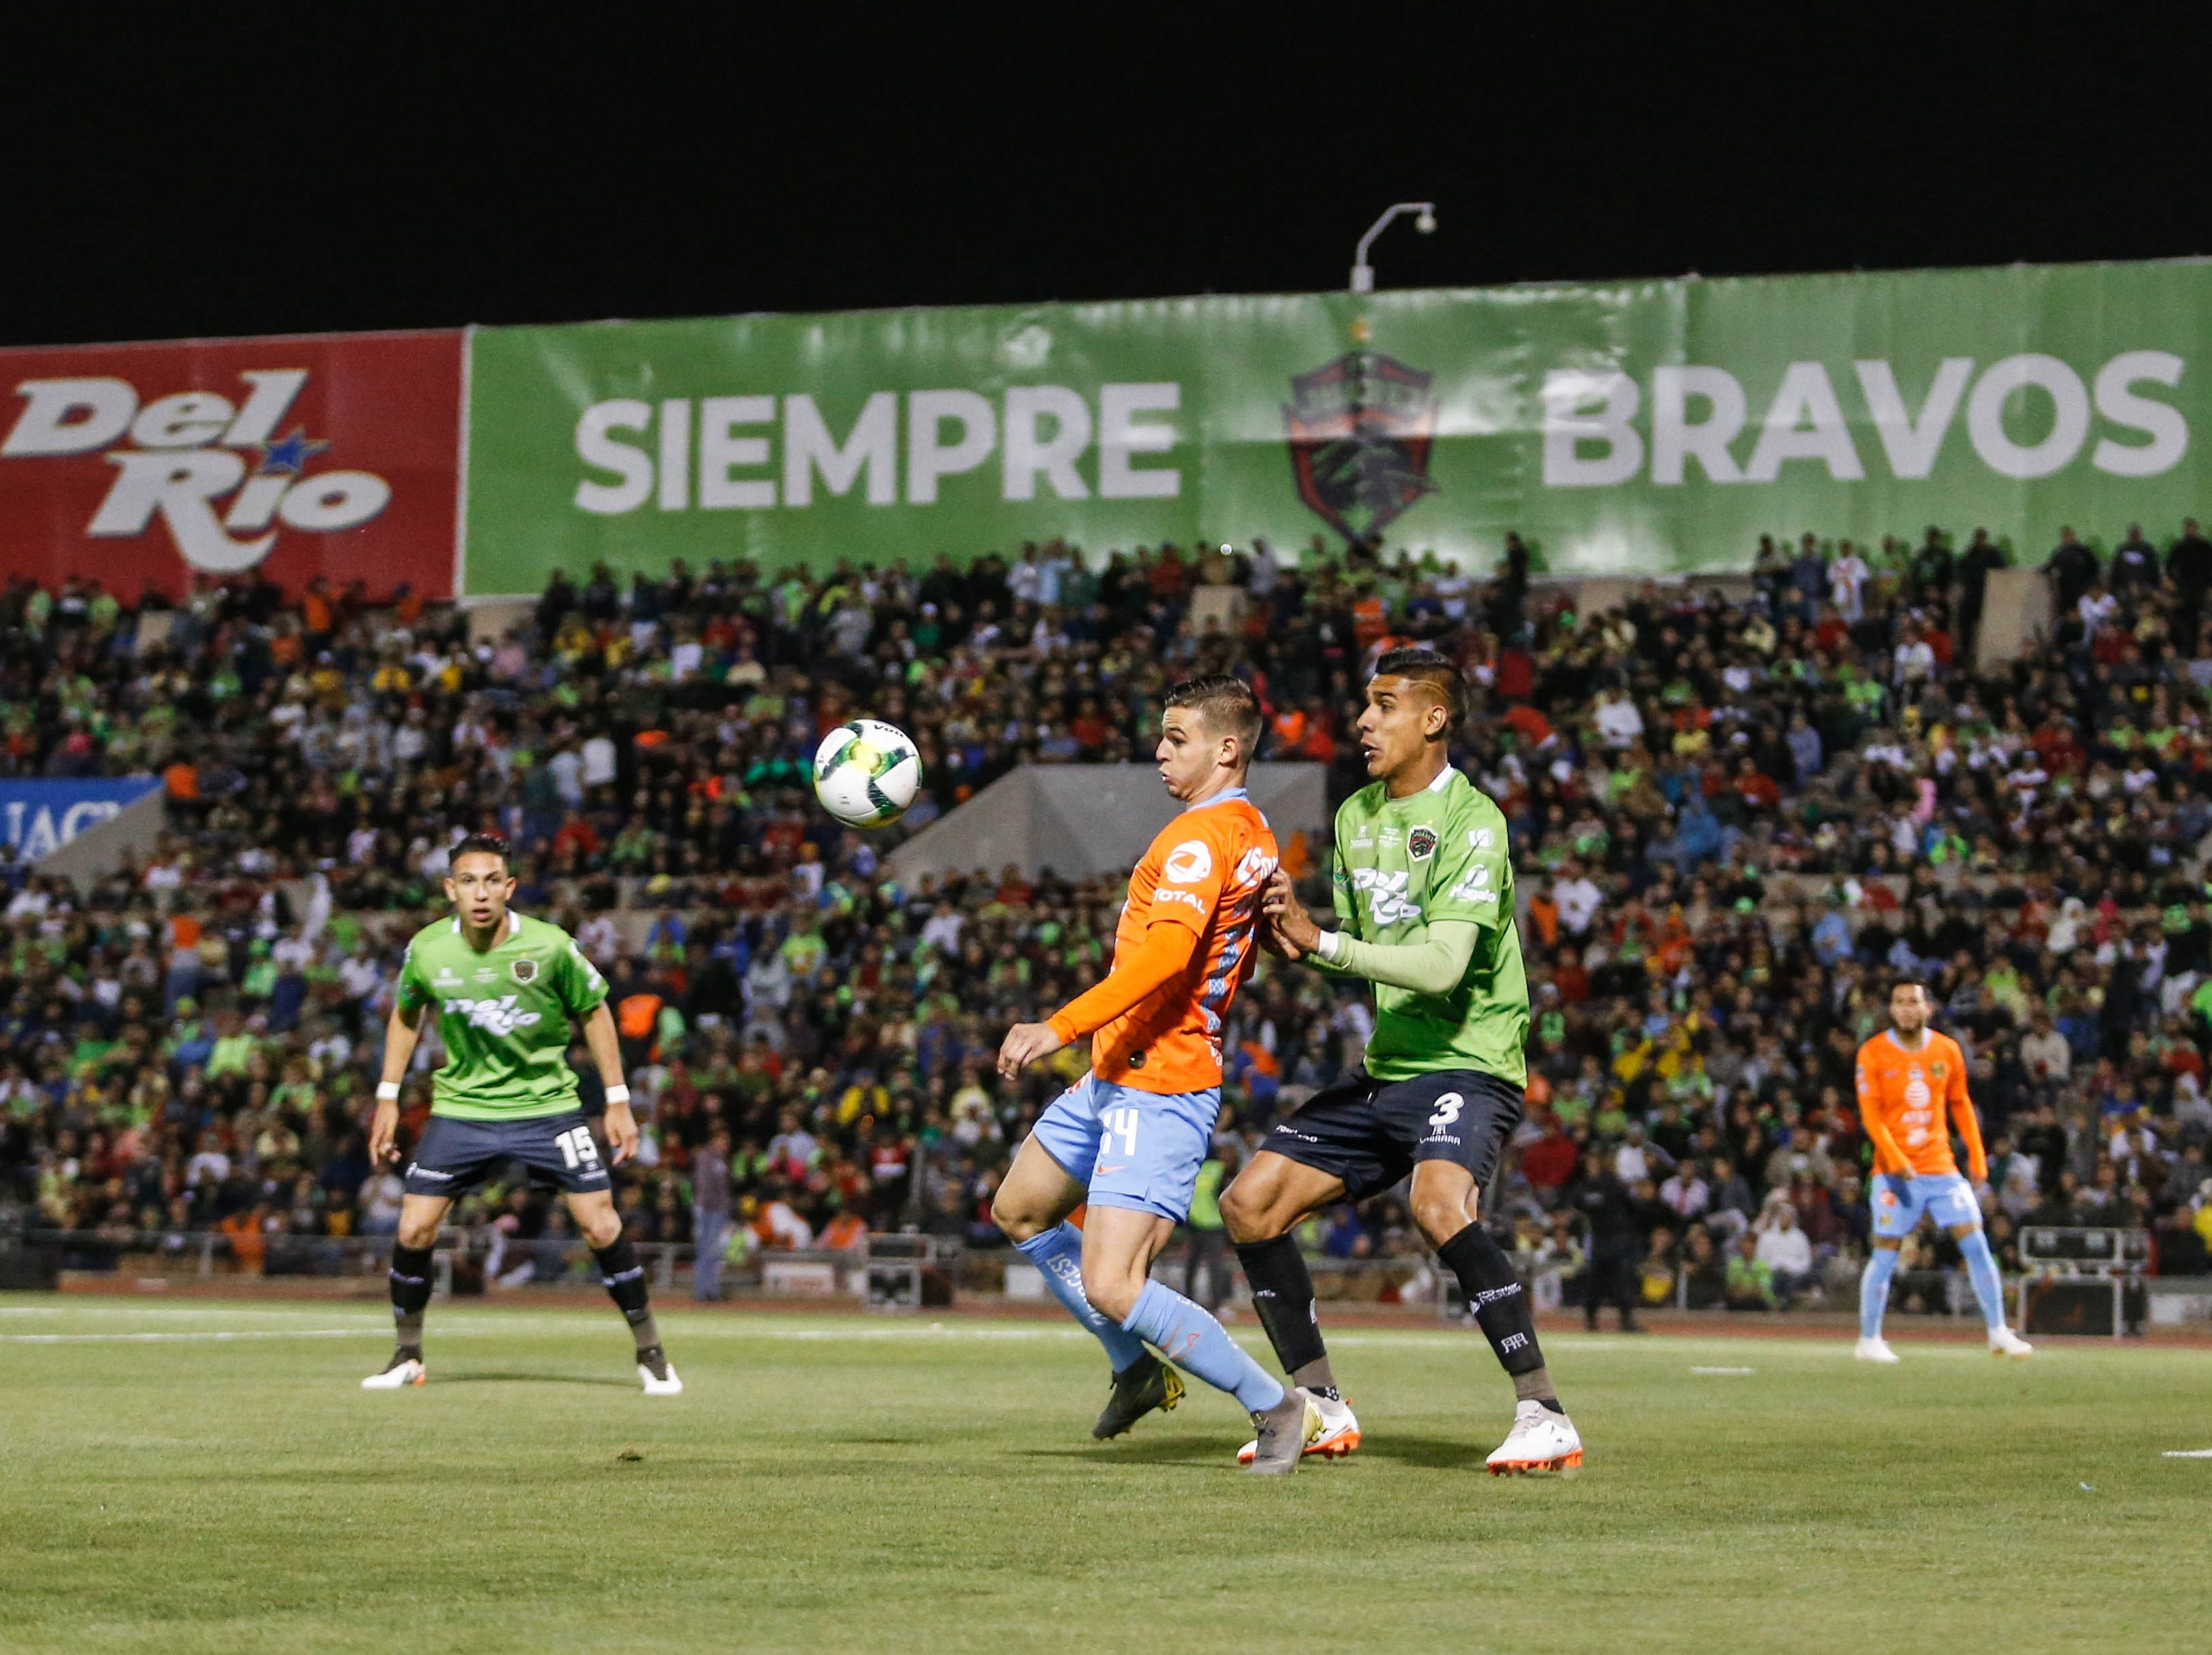 Club America defeated F.C. Juarez 1-0 in the Copa MX tournament held in Juarez on Wednesday night.